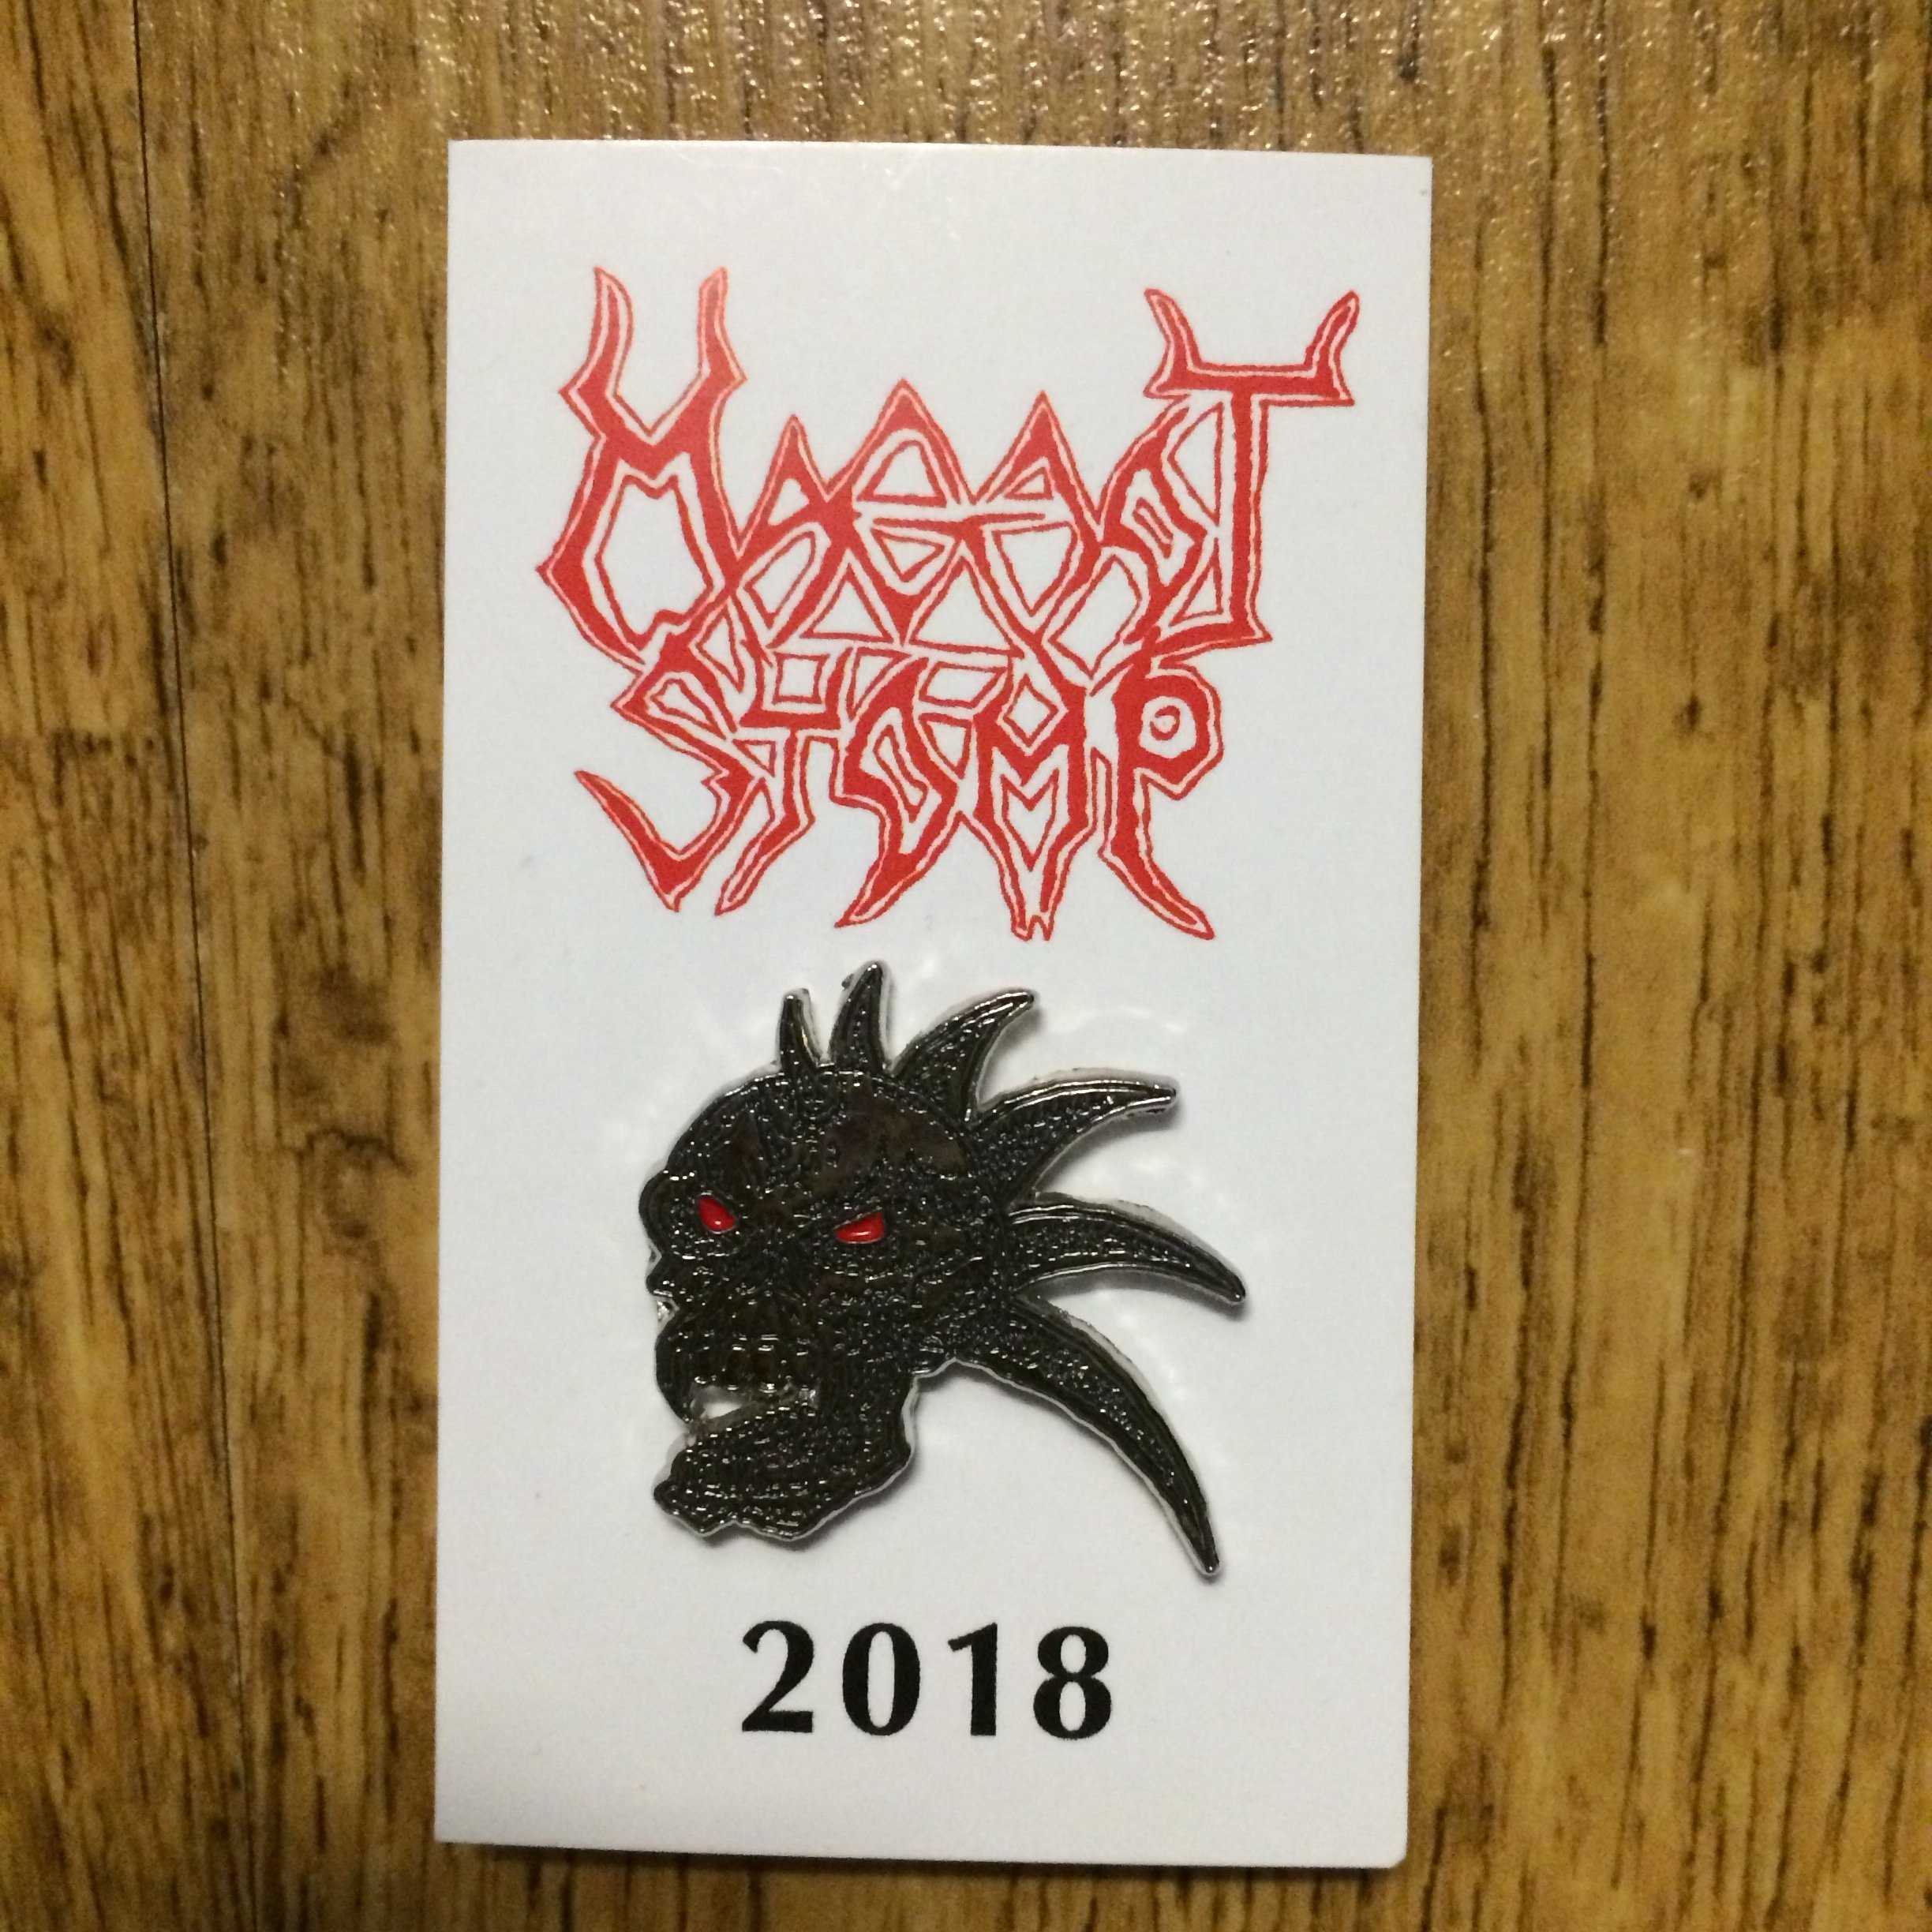 Photo of the Malevolent Creation - metal pin